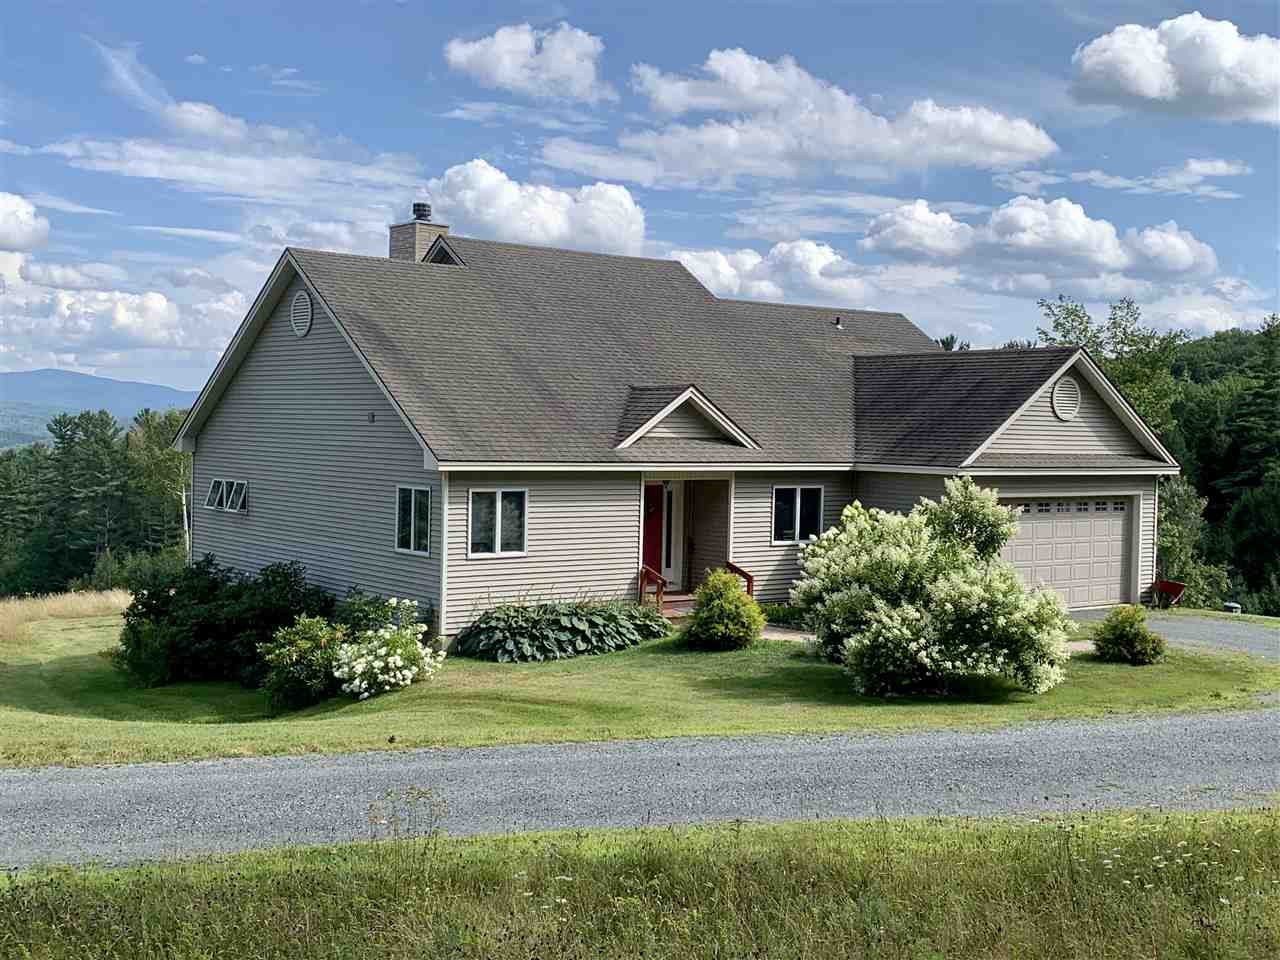 MLS 4742658: 179 Clay Hill Road, Hartland VT